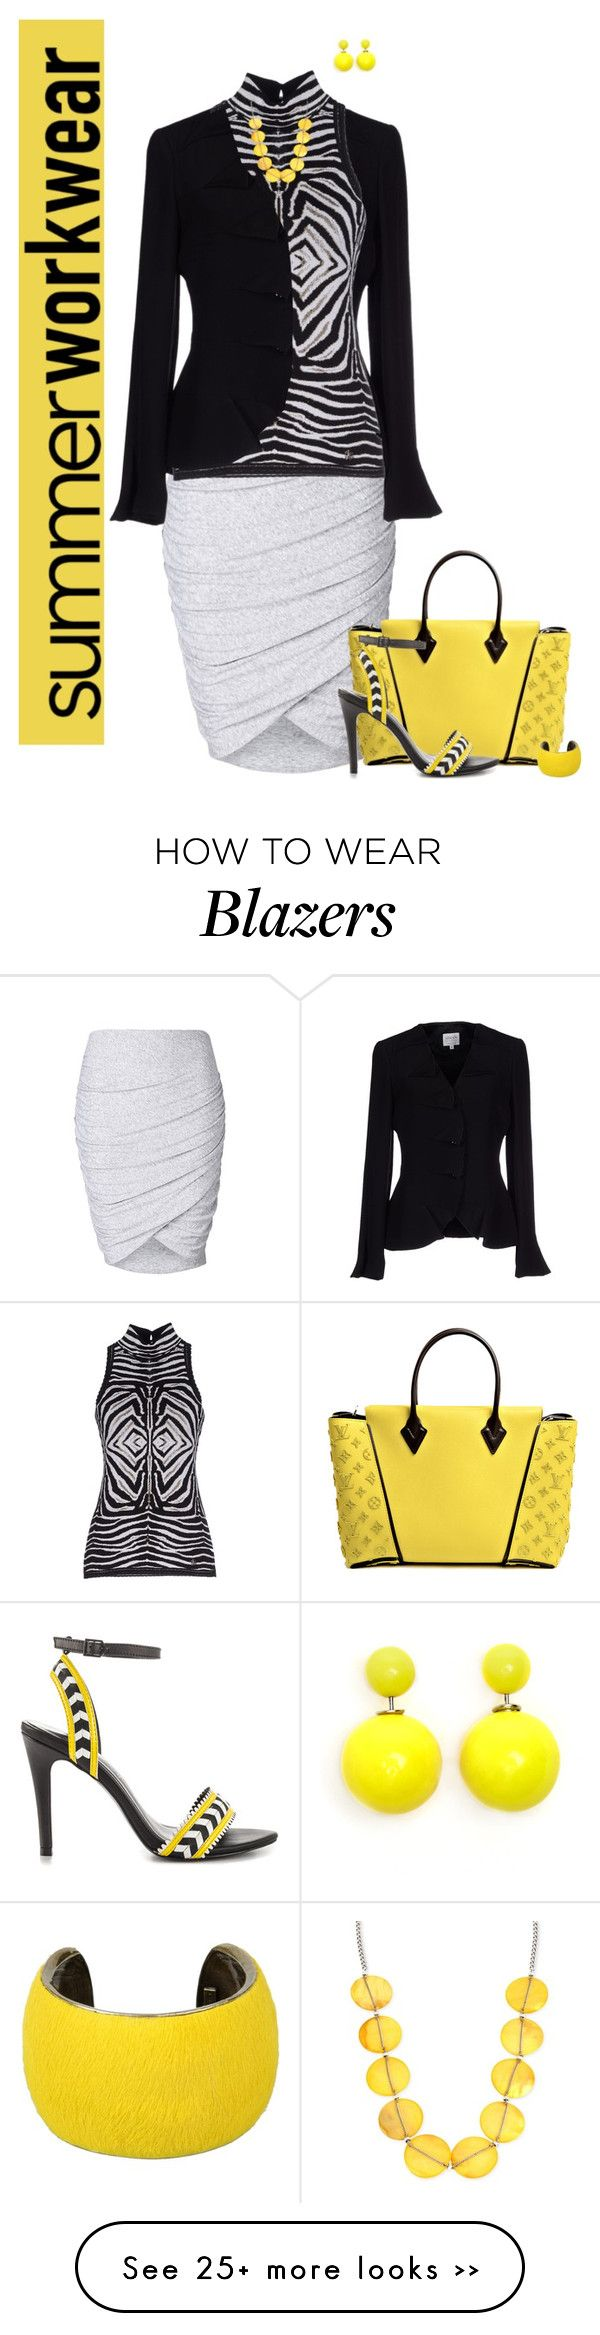 """Summer Workwear"" by chileez on Polyvore"